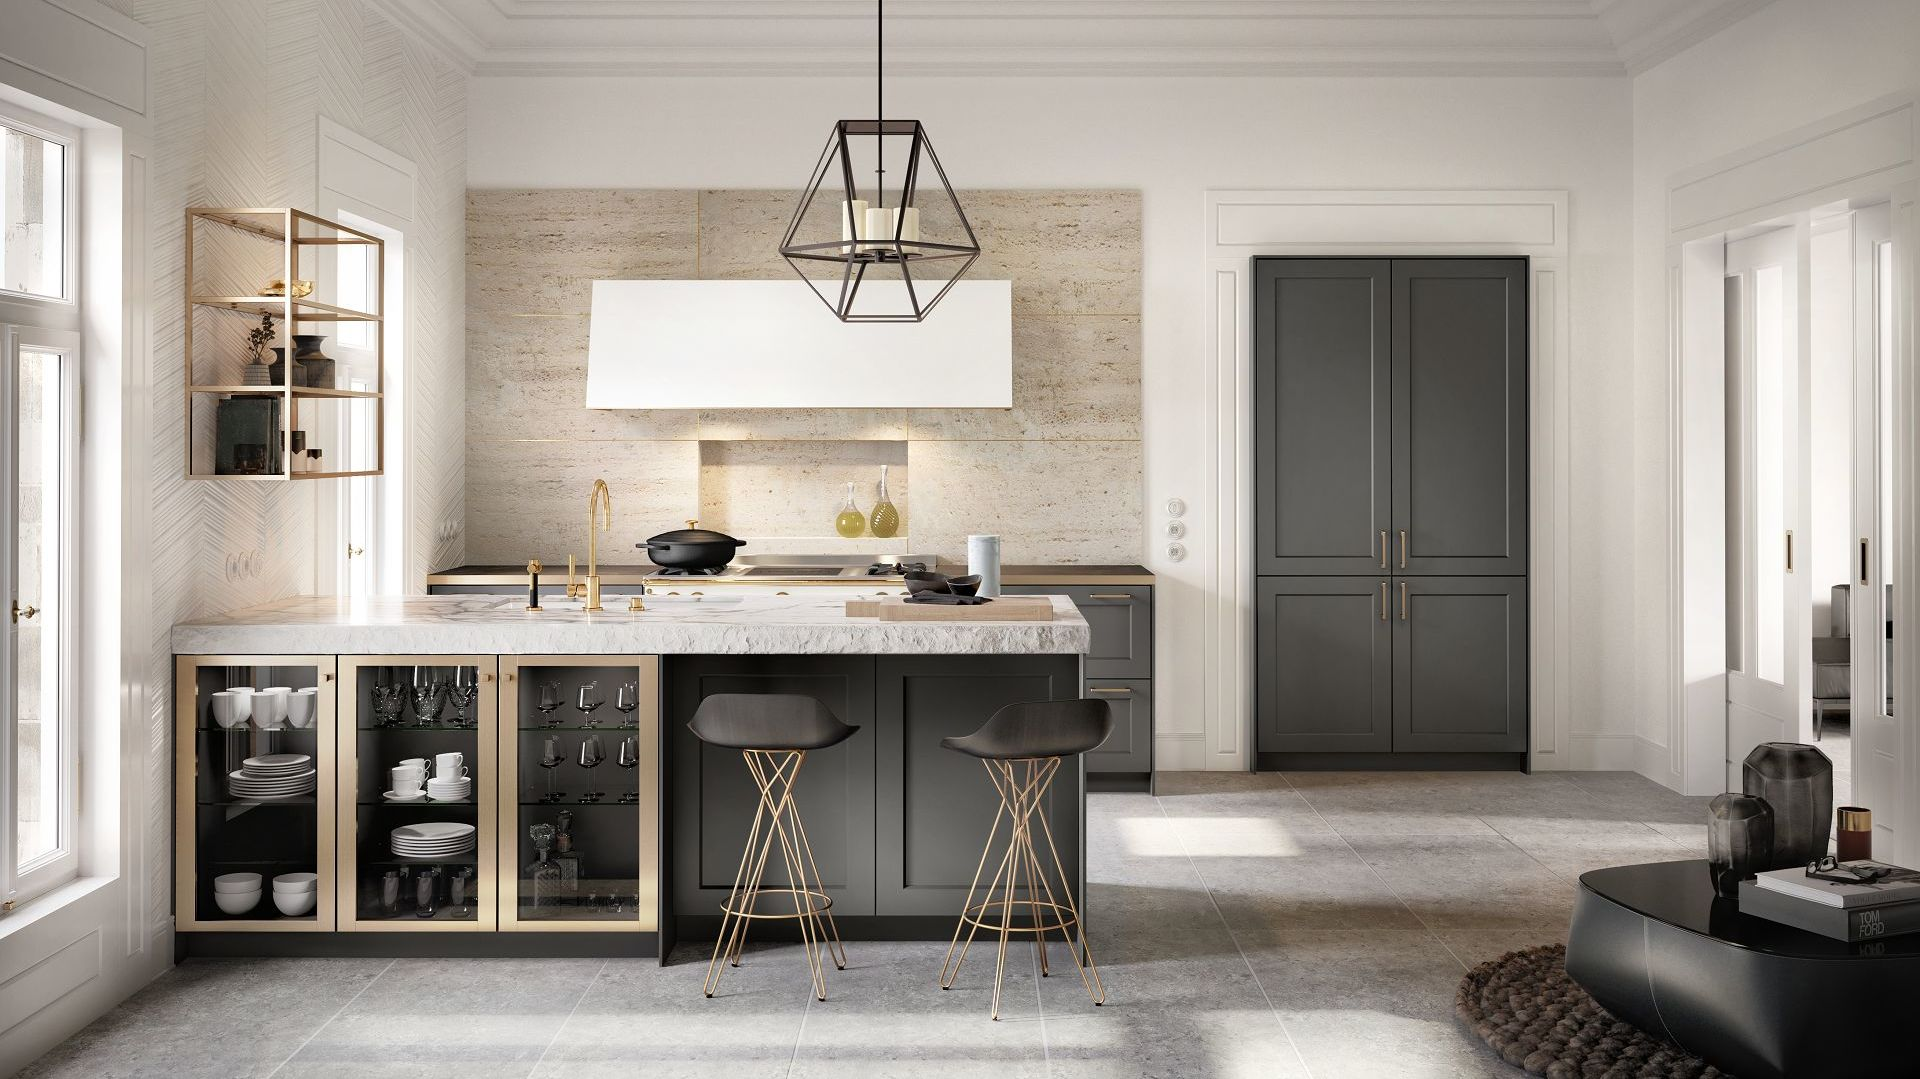 The SieMatic CLASSIC collection offers options that go far beyond the usual in kitchen design with truly unlimited creative freedom